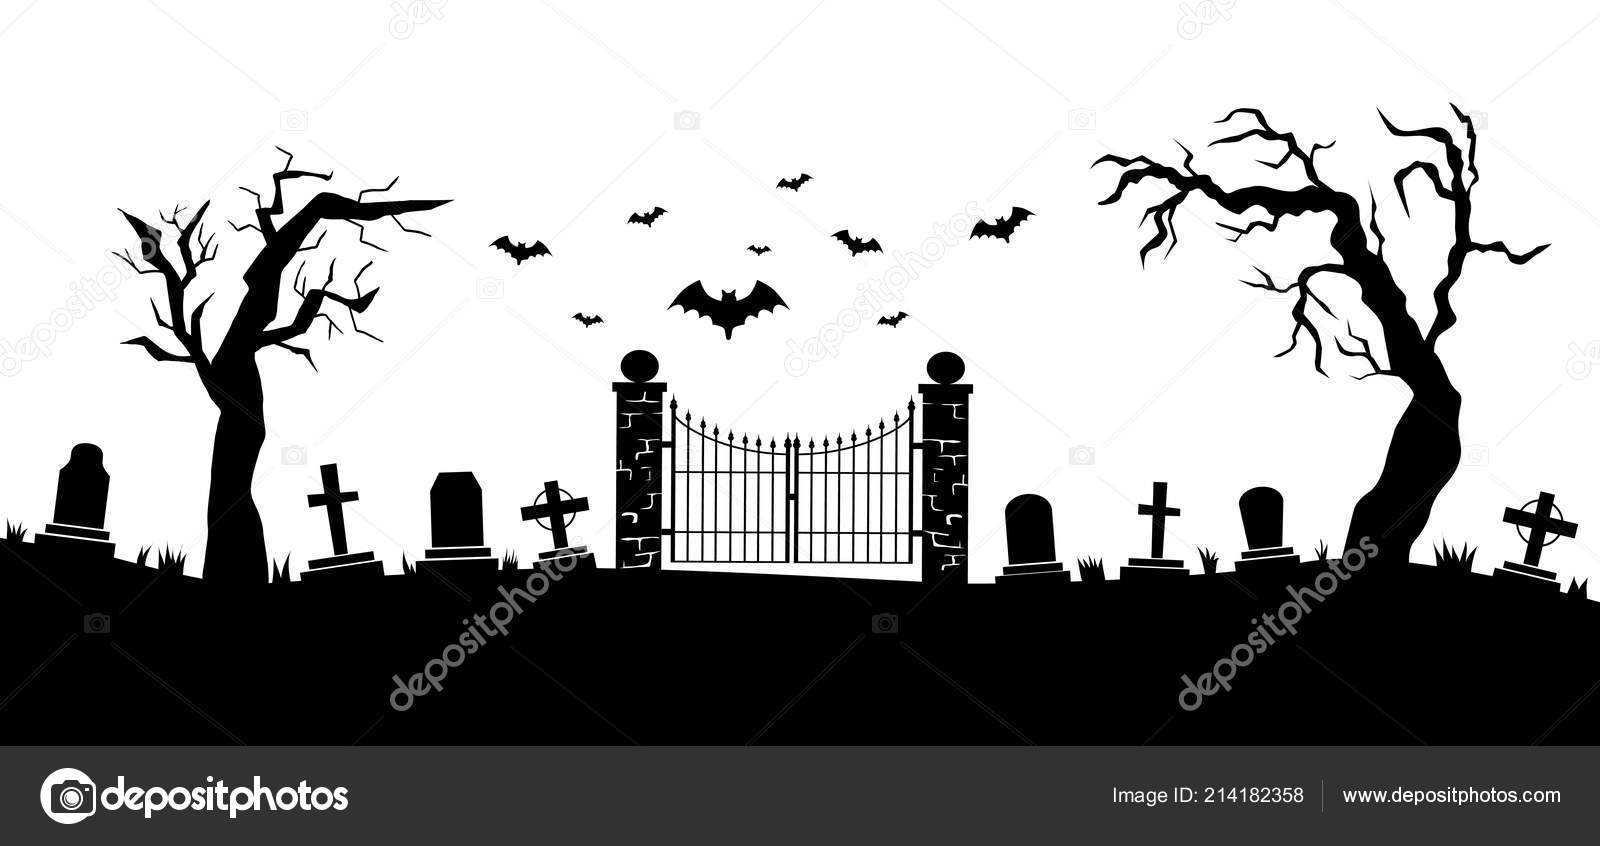 Halloween Vector Black And White.Panorama Cemetery Graveyard Silhouettes Gravestones Fence Trees Etc